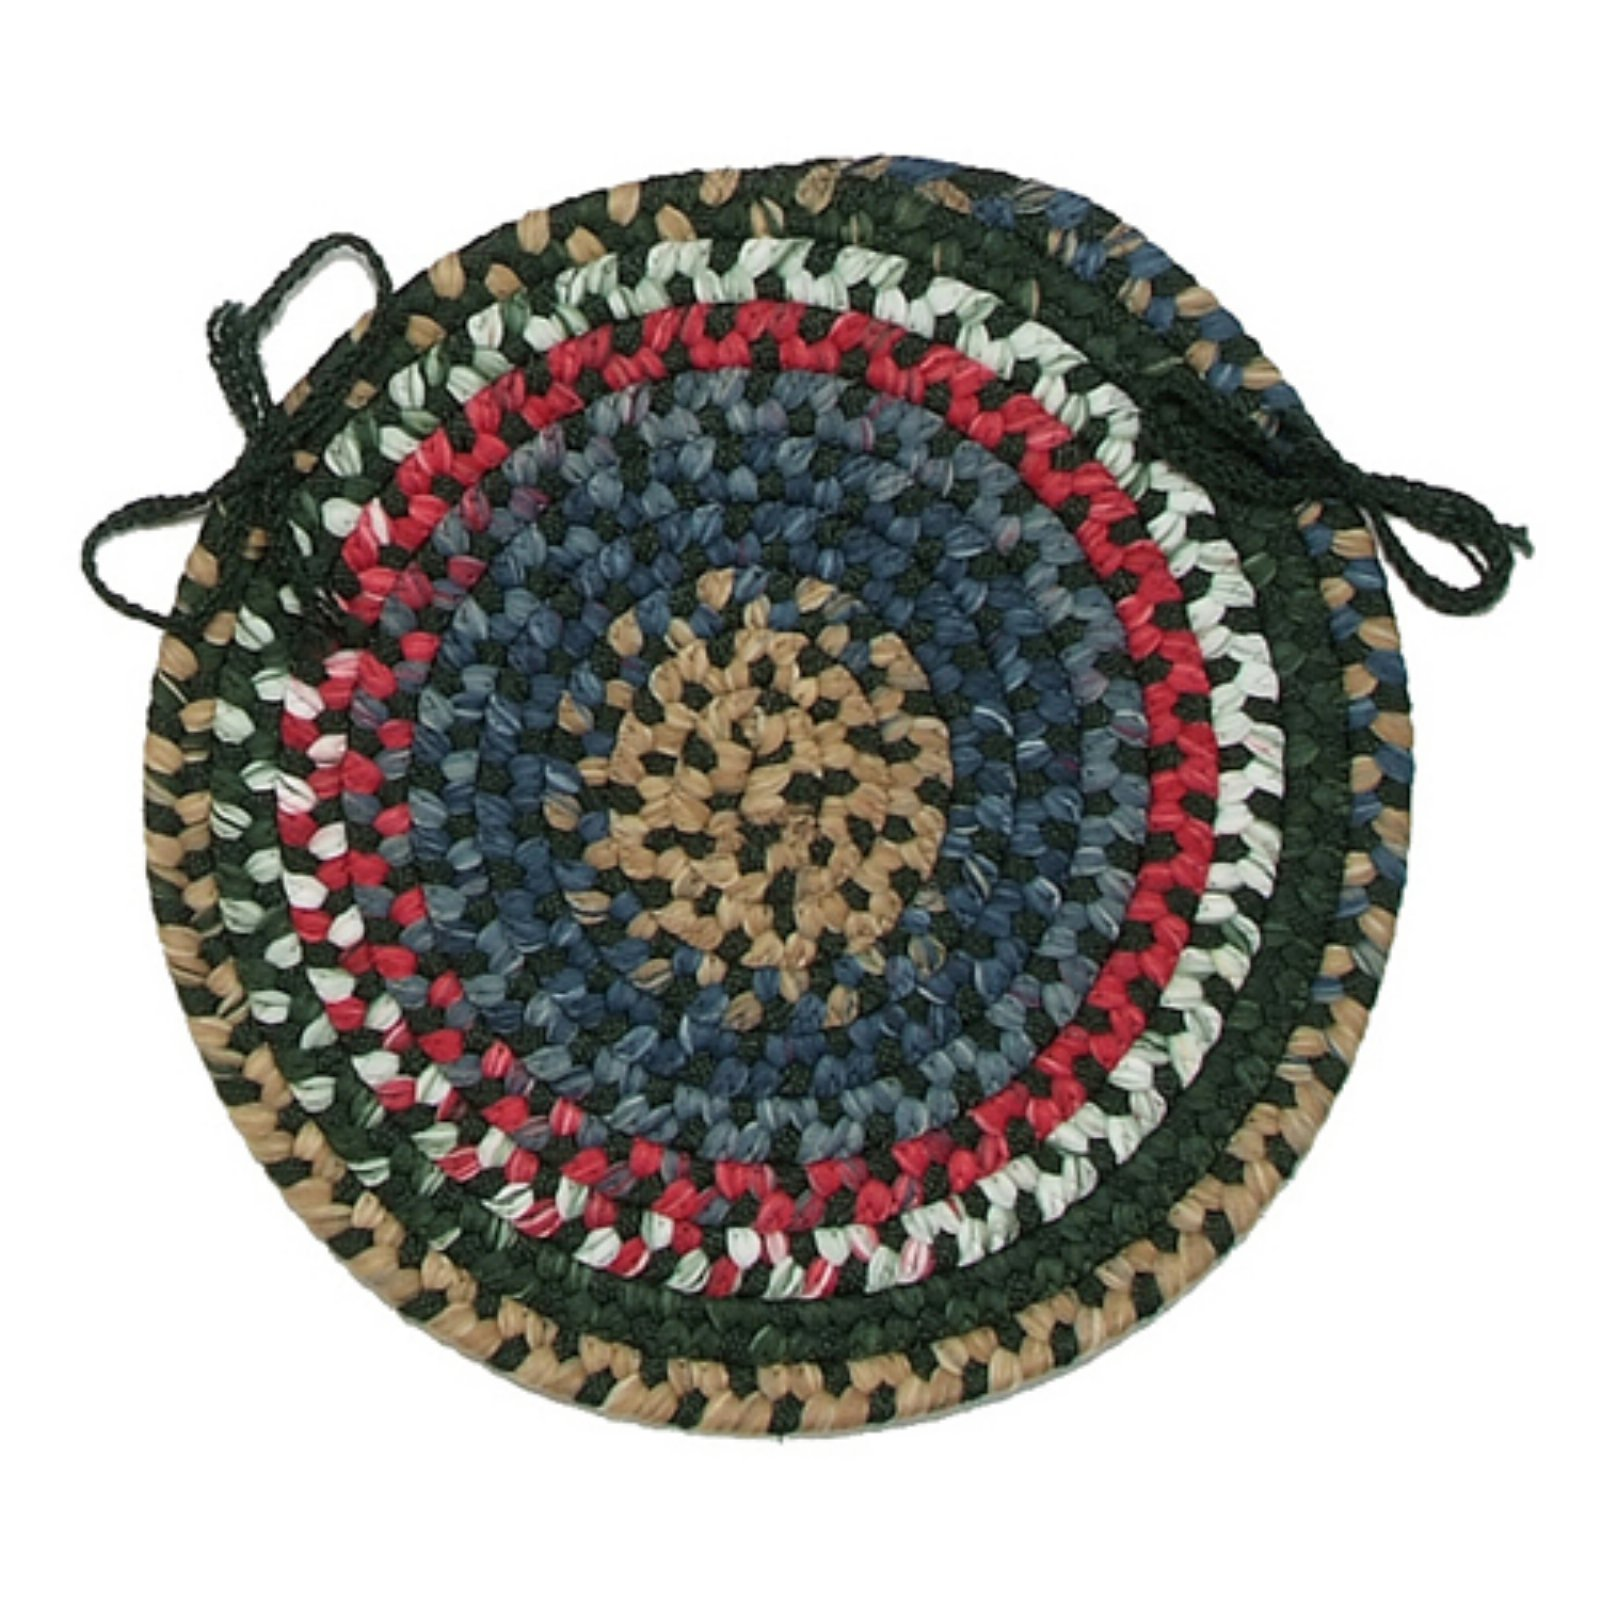 Colonial Mills Chestnut Knoll 15 in. Round Chair Pad by Chestnut Knoll